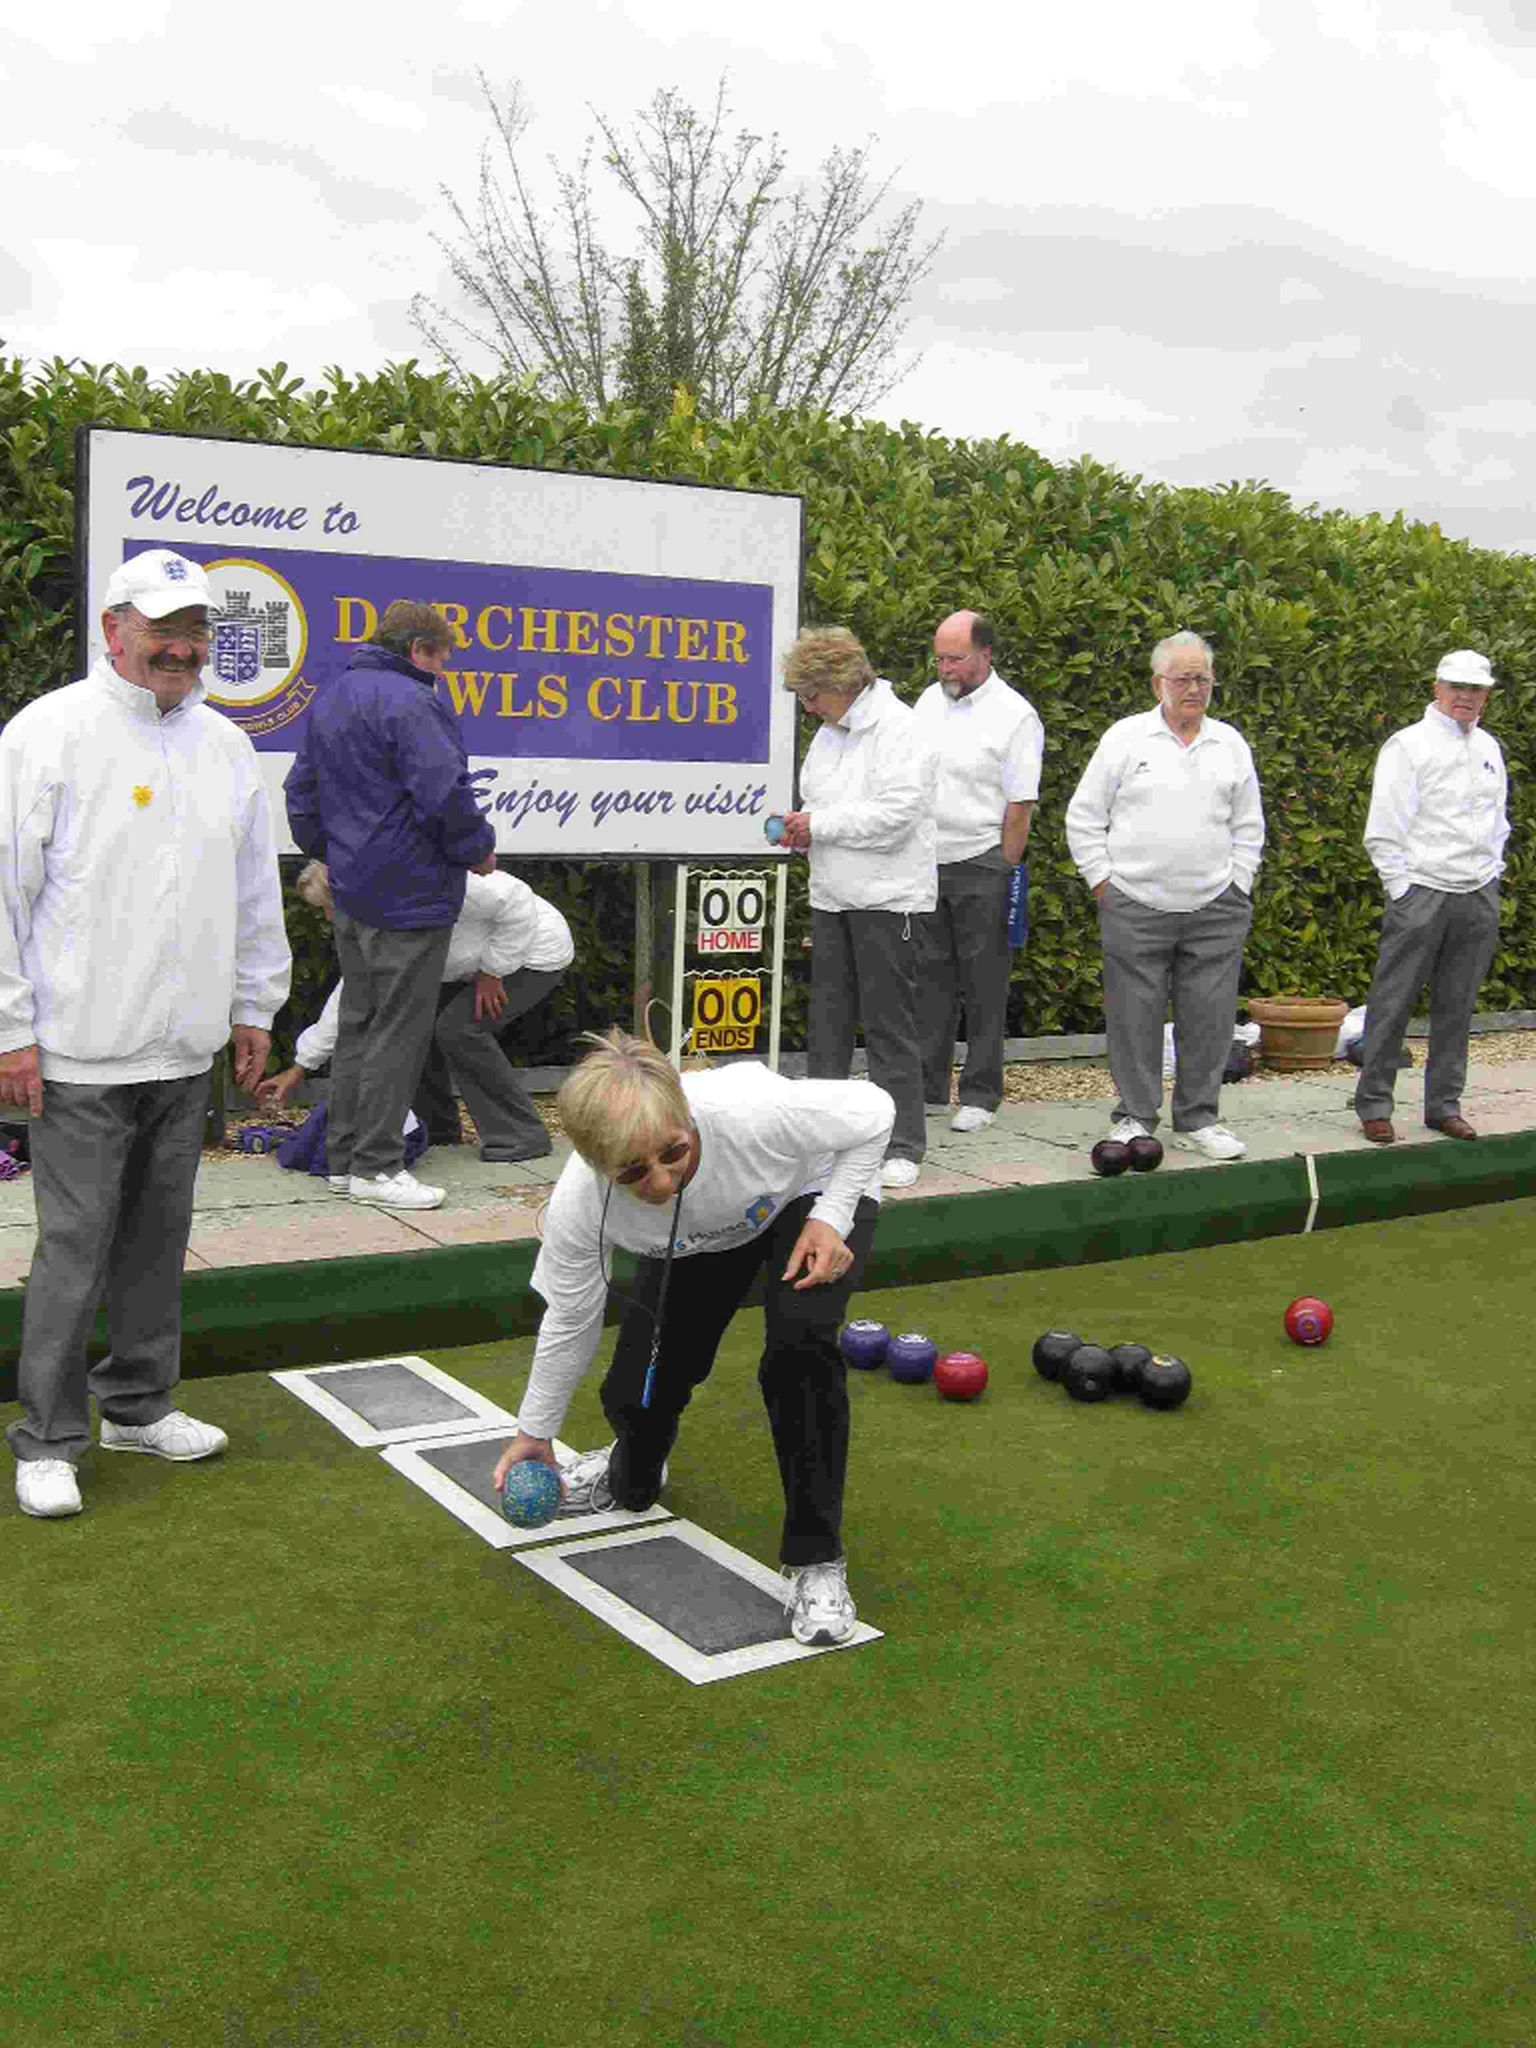 ON THE GREEN: Gill Slade bowls the first ball to open the outdoor season at Dorchester